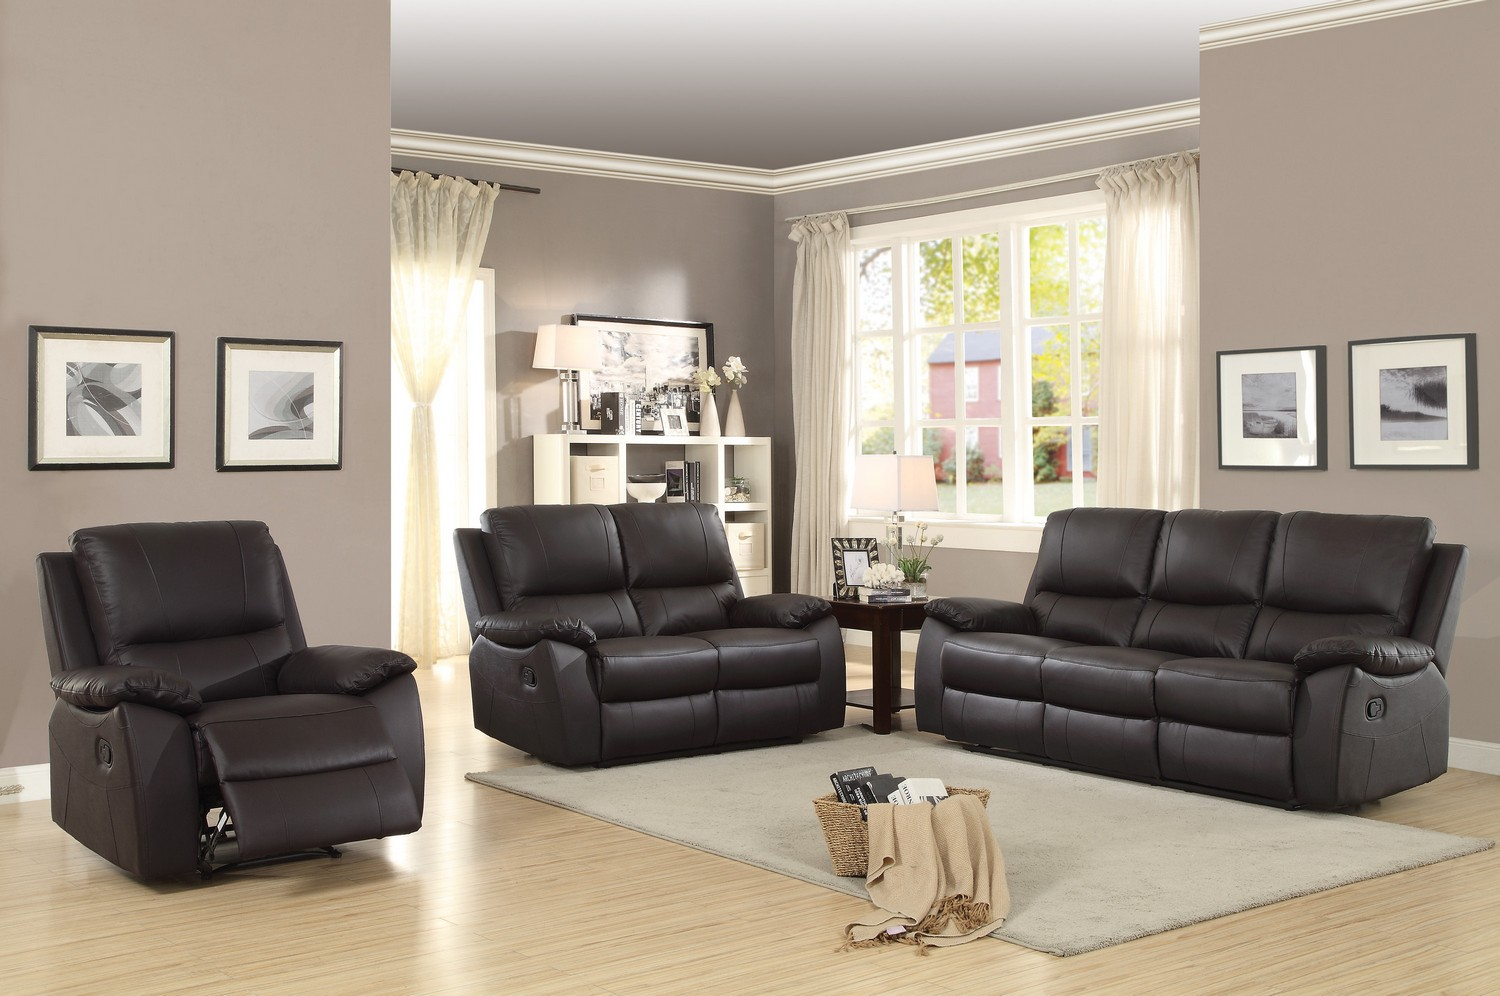 Fine Homelegance Greeley 2Pc Brown Double Reclining Sofa Loveseat Set Beutiful Home Inspiration Cosmmahrainfo